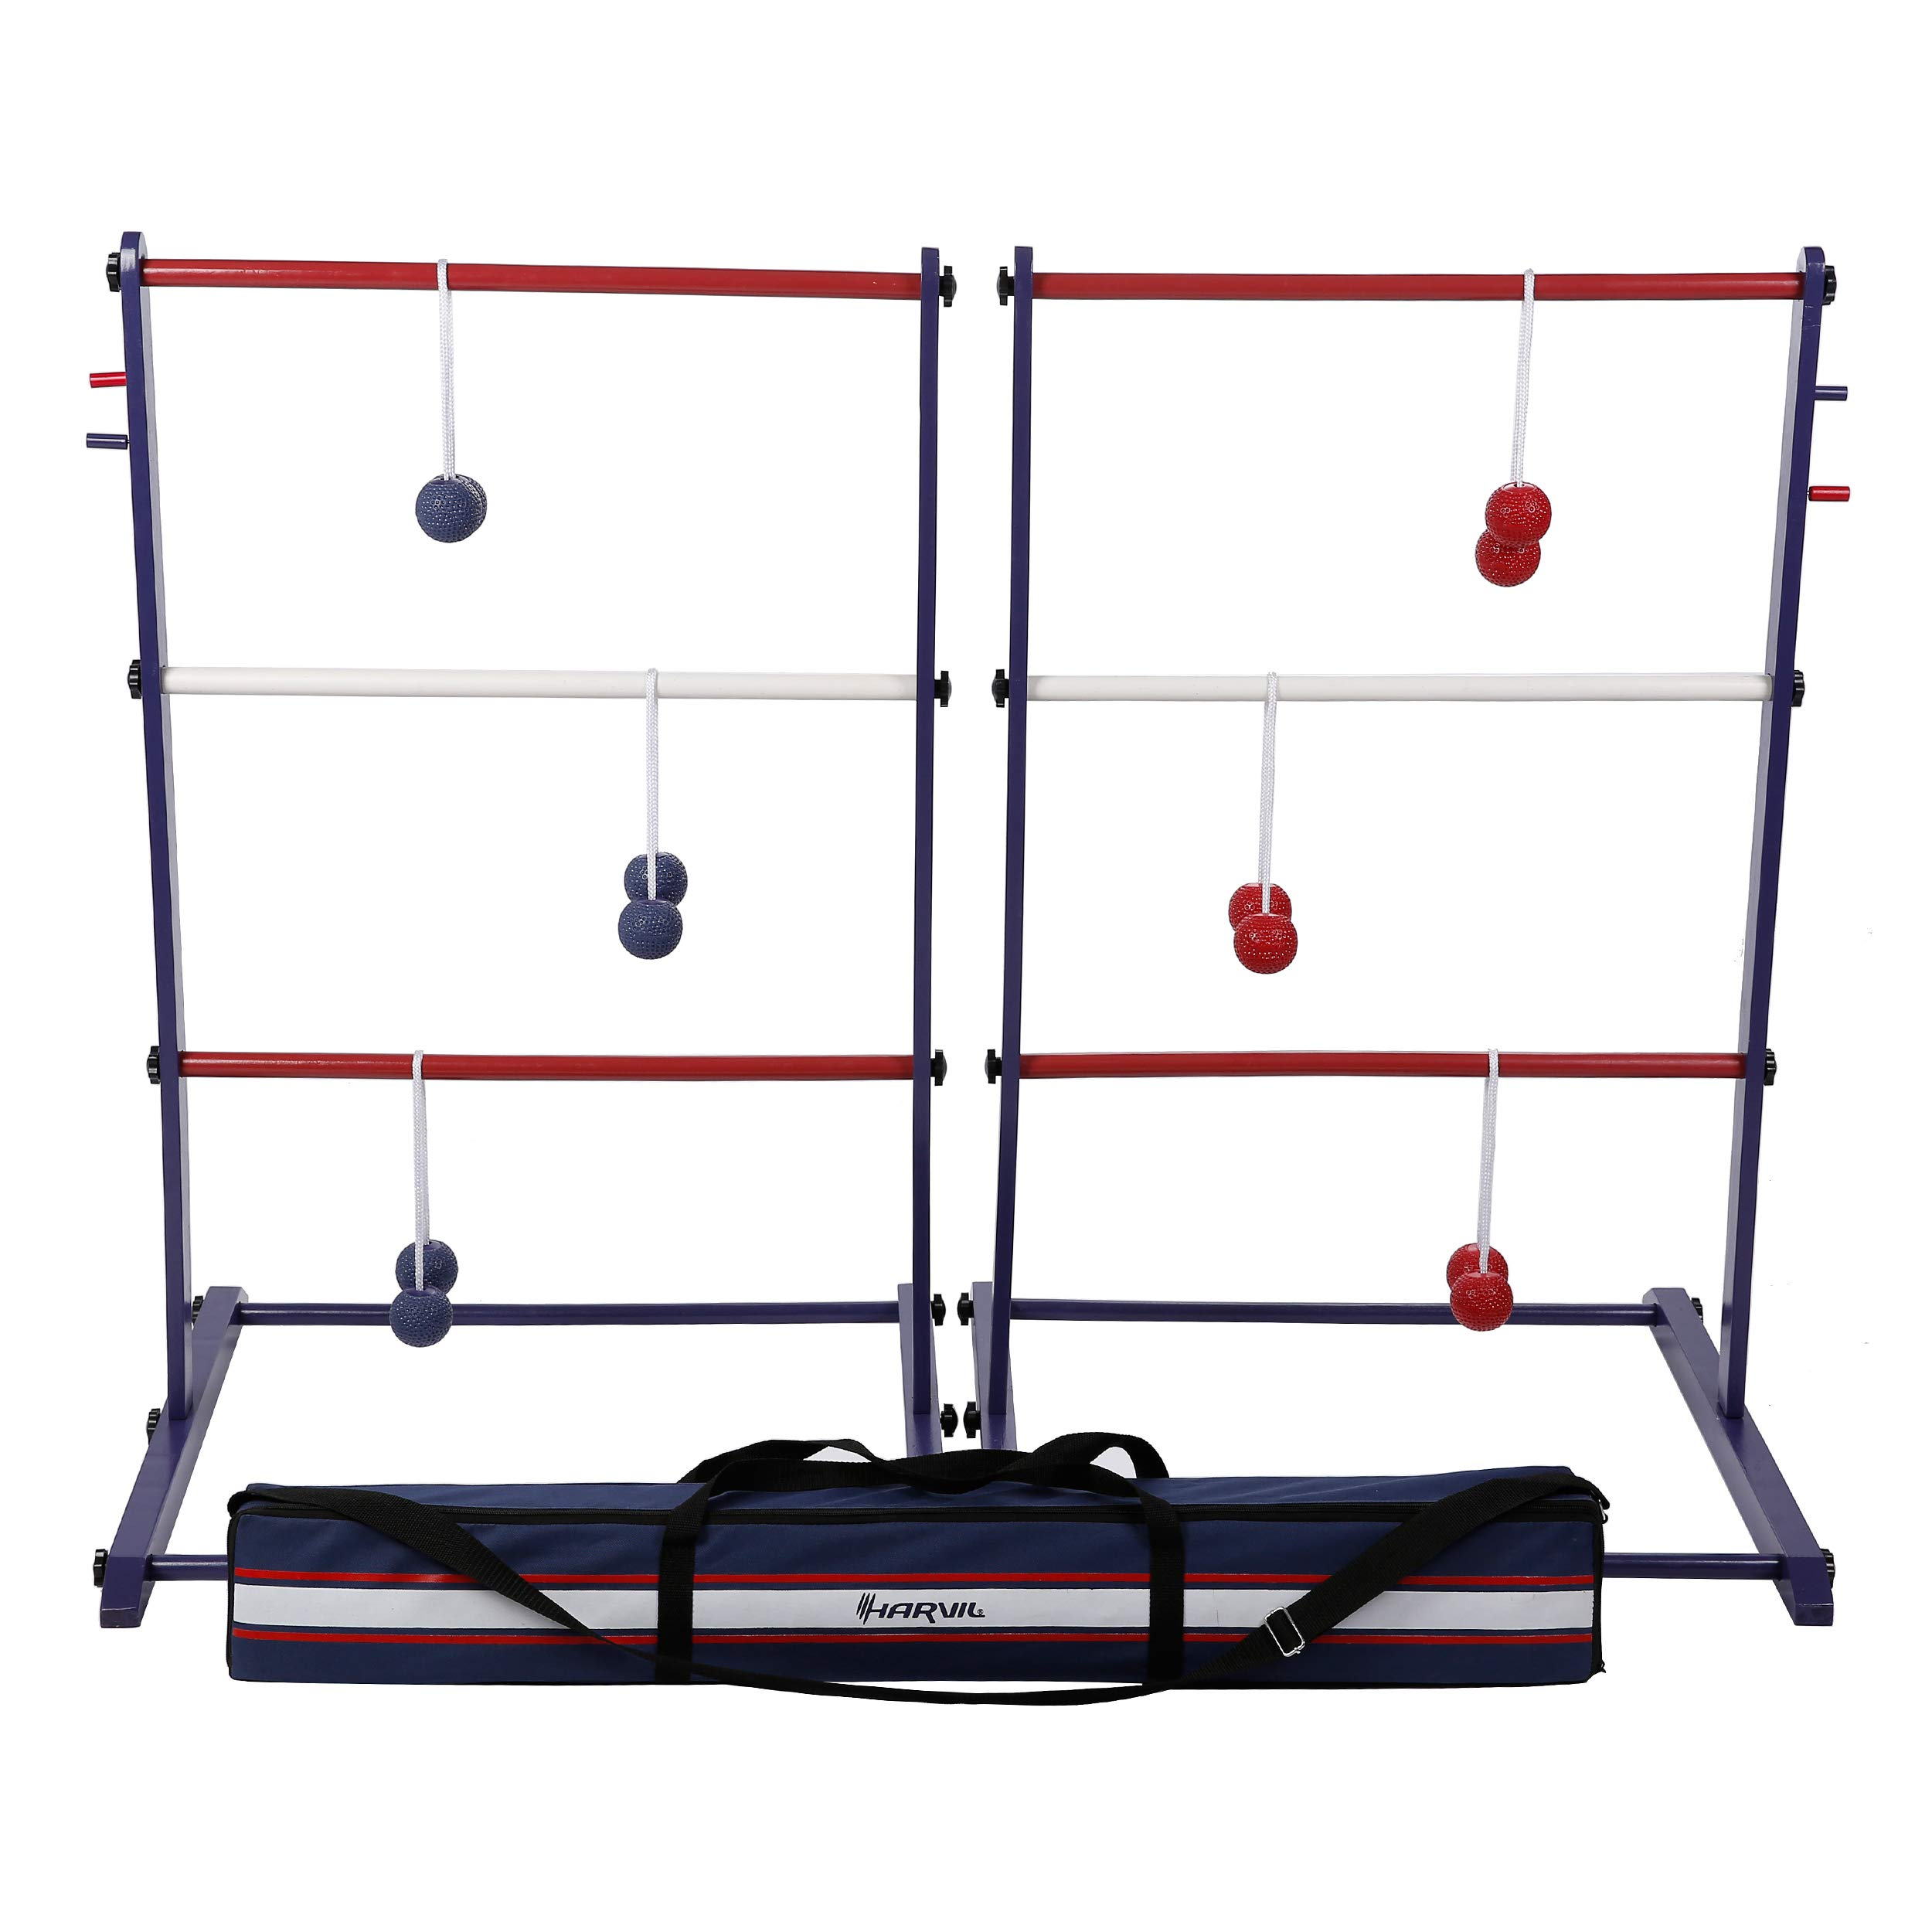 Harvil Wooden Ladder Ball Game Set. Includes Soft Bolas, 2 Targets, and Carrying Case. by Harvil